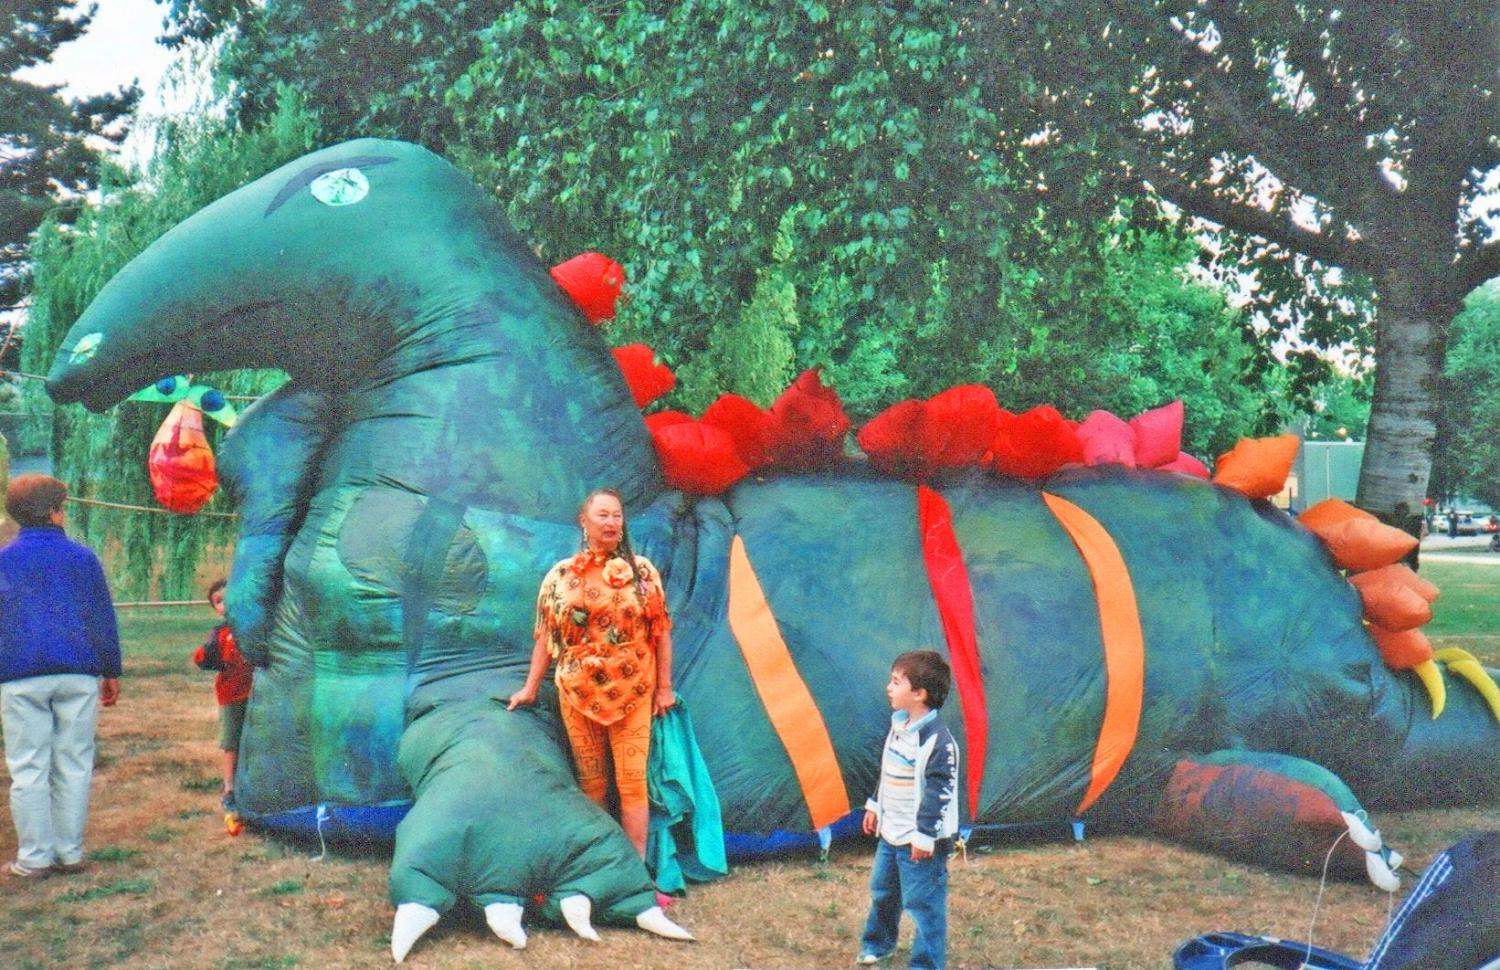 Giant inflatable dinosaur